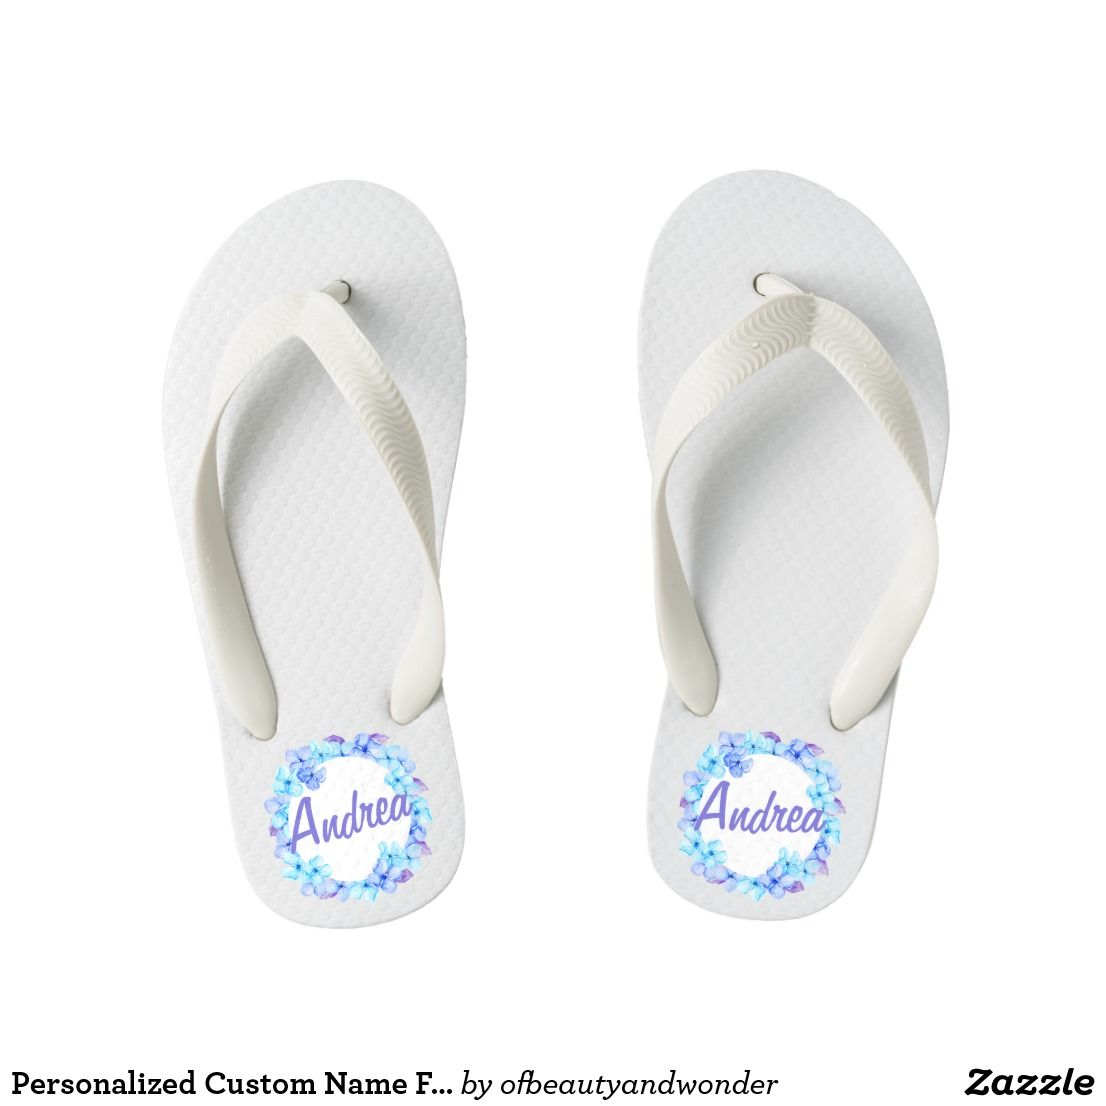 5a9bb617a2f3 Personalized Custom Name Floral Wreath Flip Flops in 2018